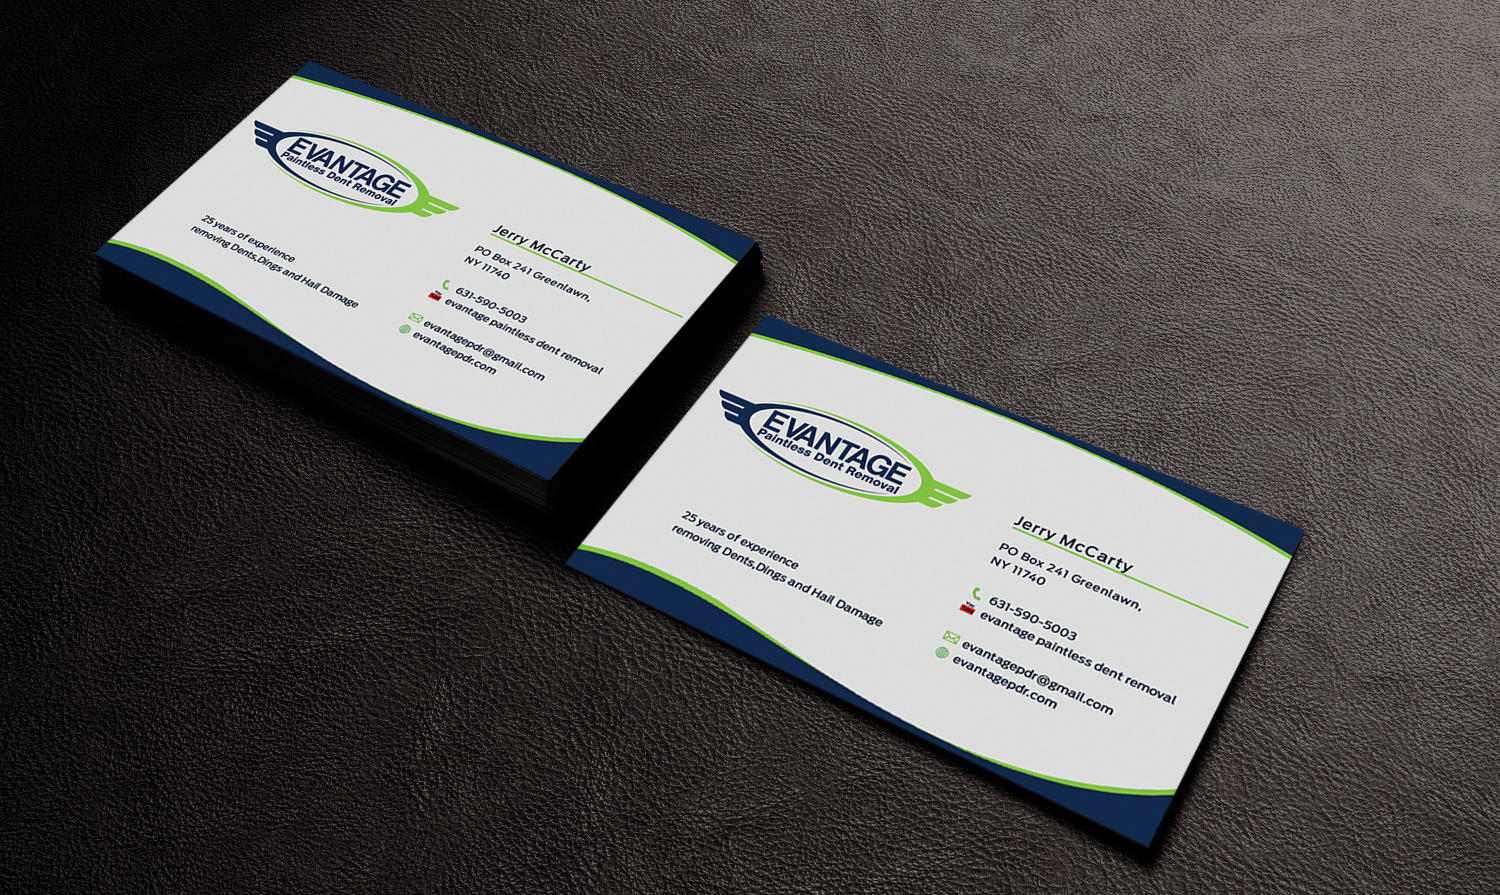 bold modern auto repair business card design for a company in united states design 17416934 - Auto Repair Business Cards